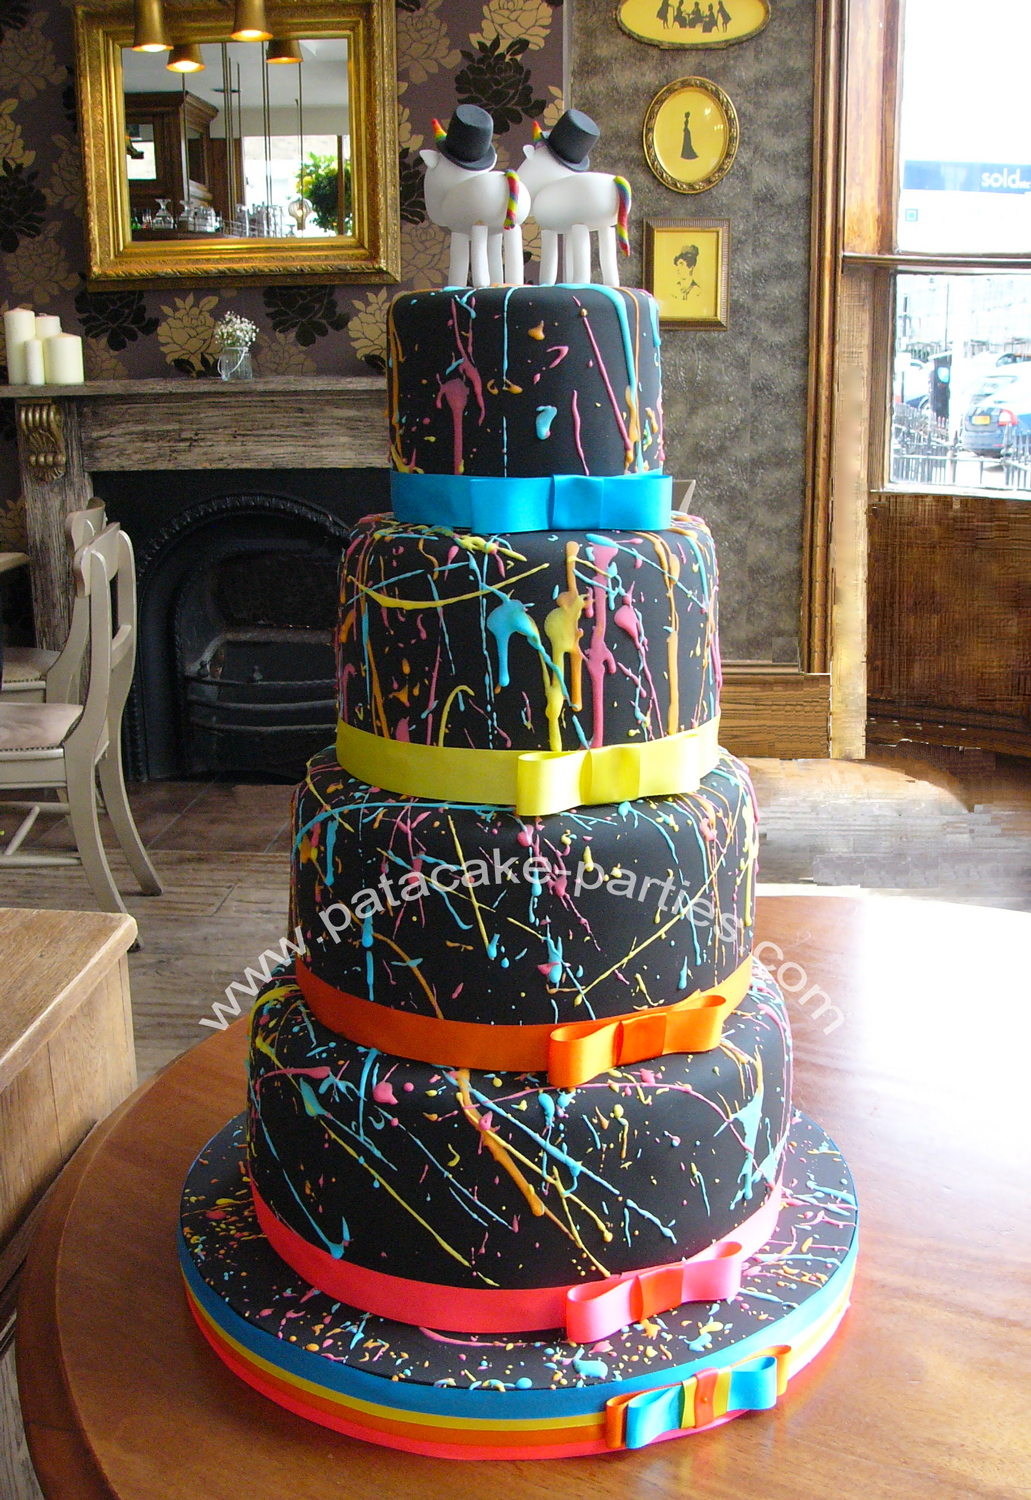 I Probably Had Far Too Much Fun Decorating Chris Carl S Colourful Wedding Cake Rainbow Sponge Covered With Black Sugarpaste And A Riot Of Colour In Royal